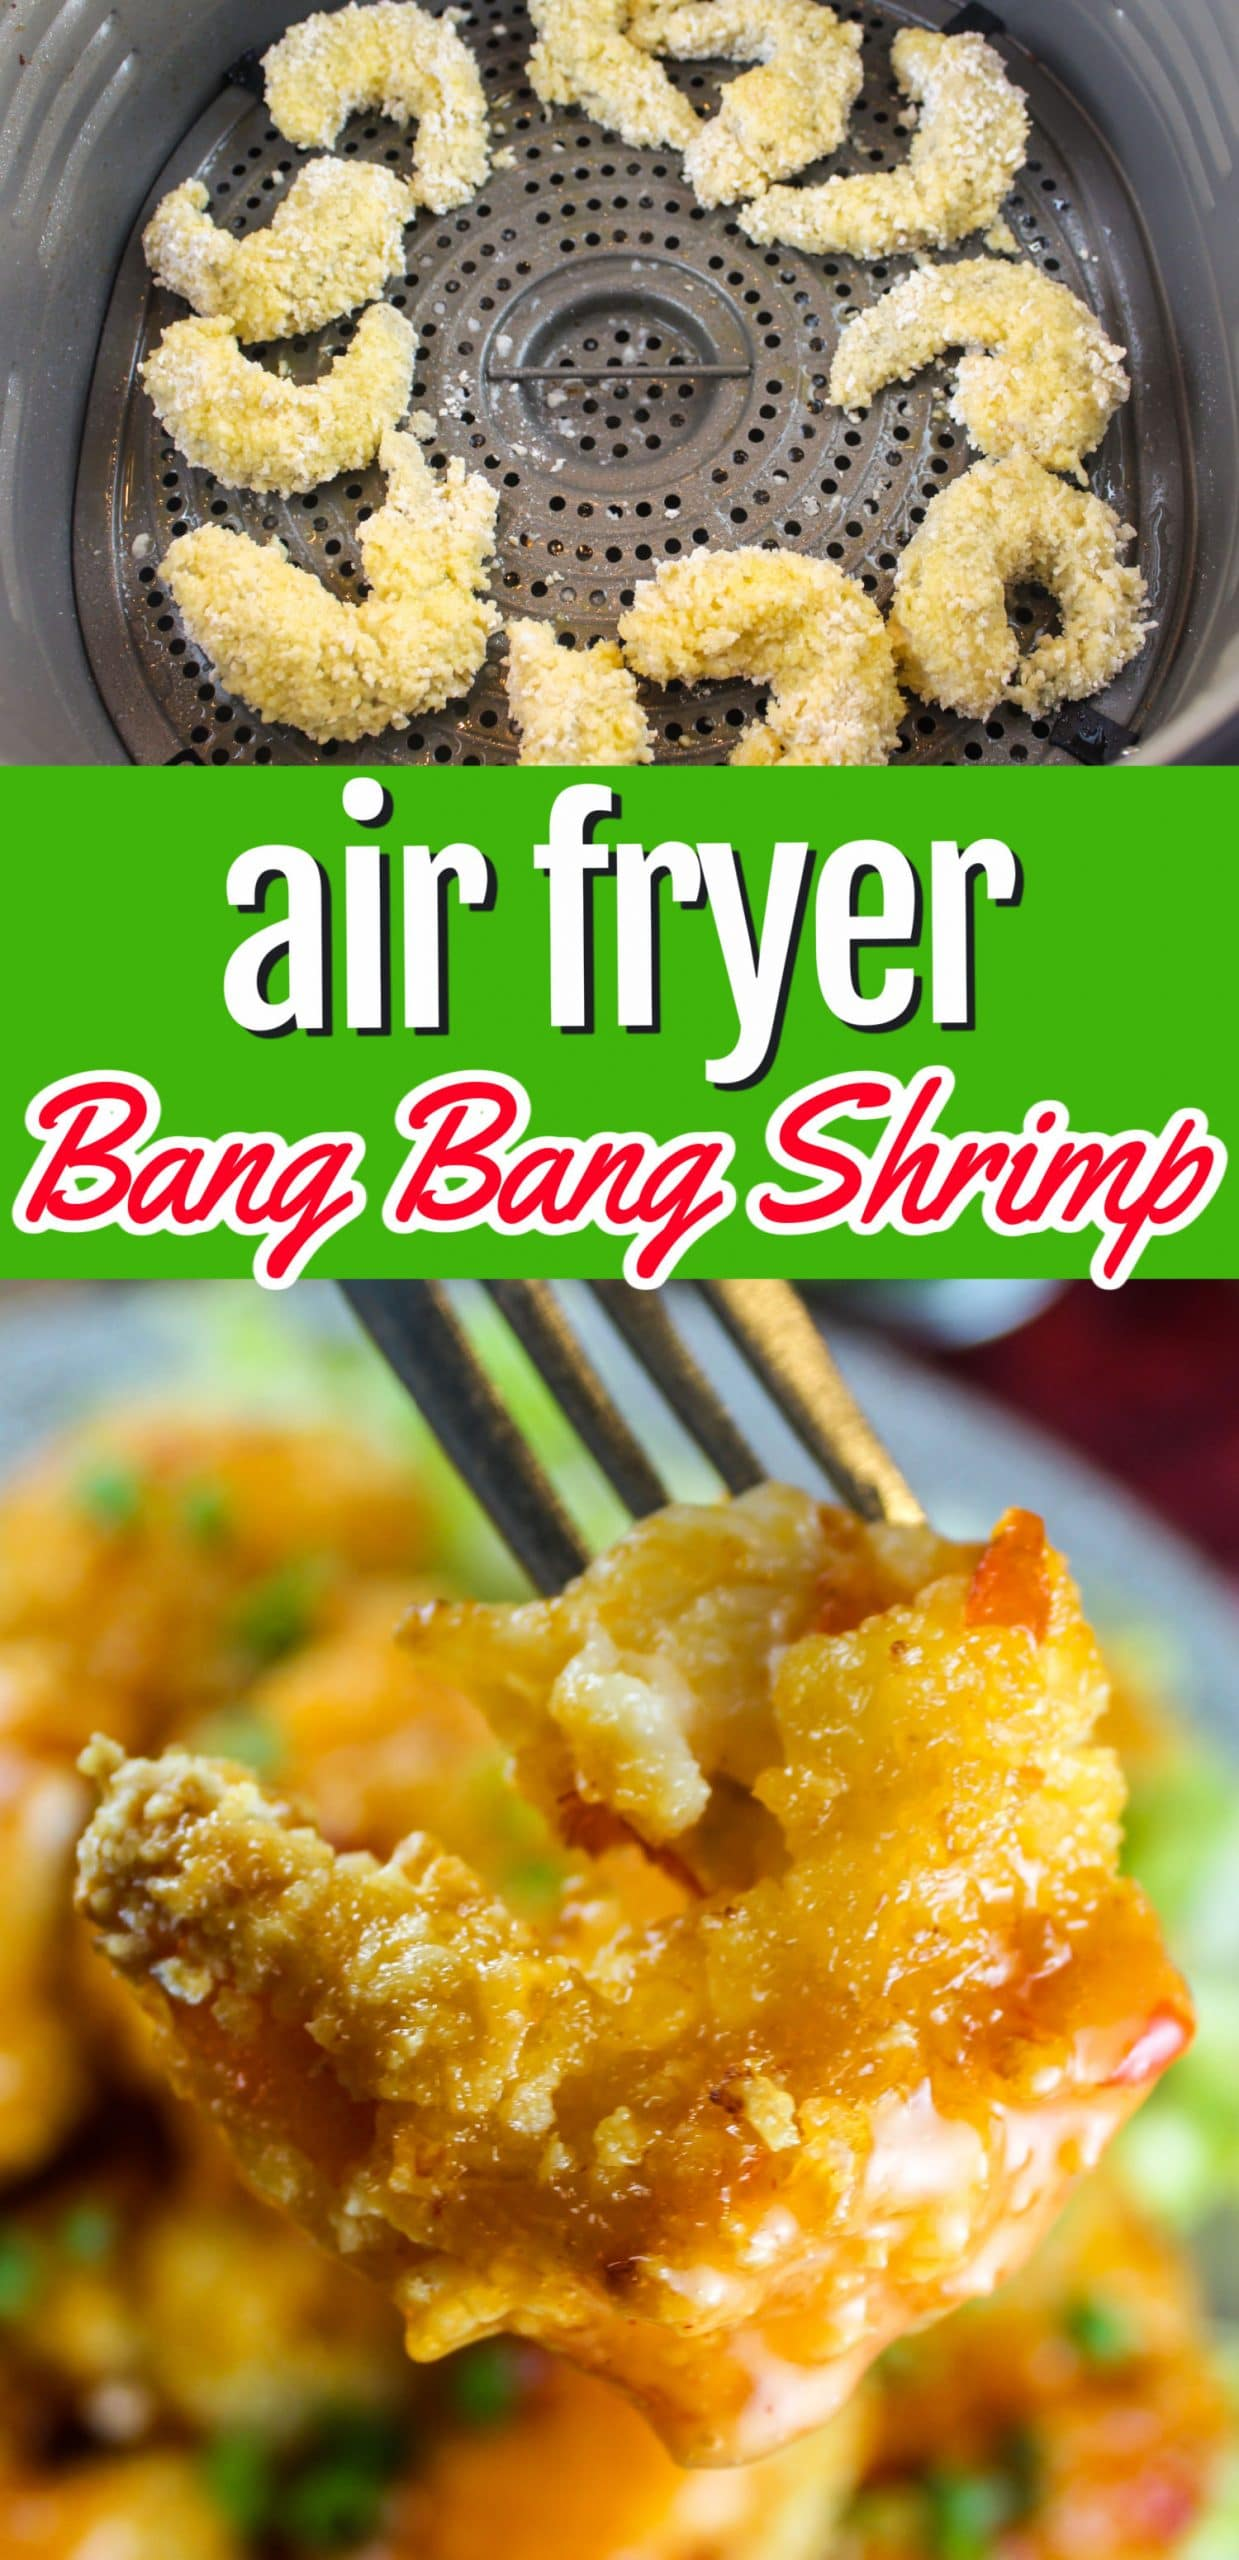 Air Fryer Bang Bang Shrimp is such a fun shrimp dish! You can eat them on their own or pop them in tortillas for some tacos. It's also easy to make - and a little messy - which come on - is the fun part!  via @foodhussy